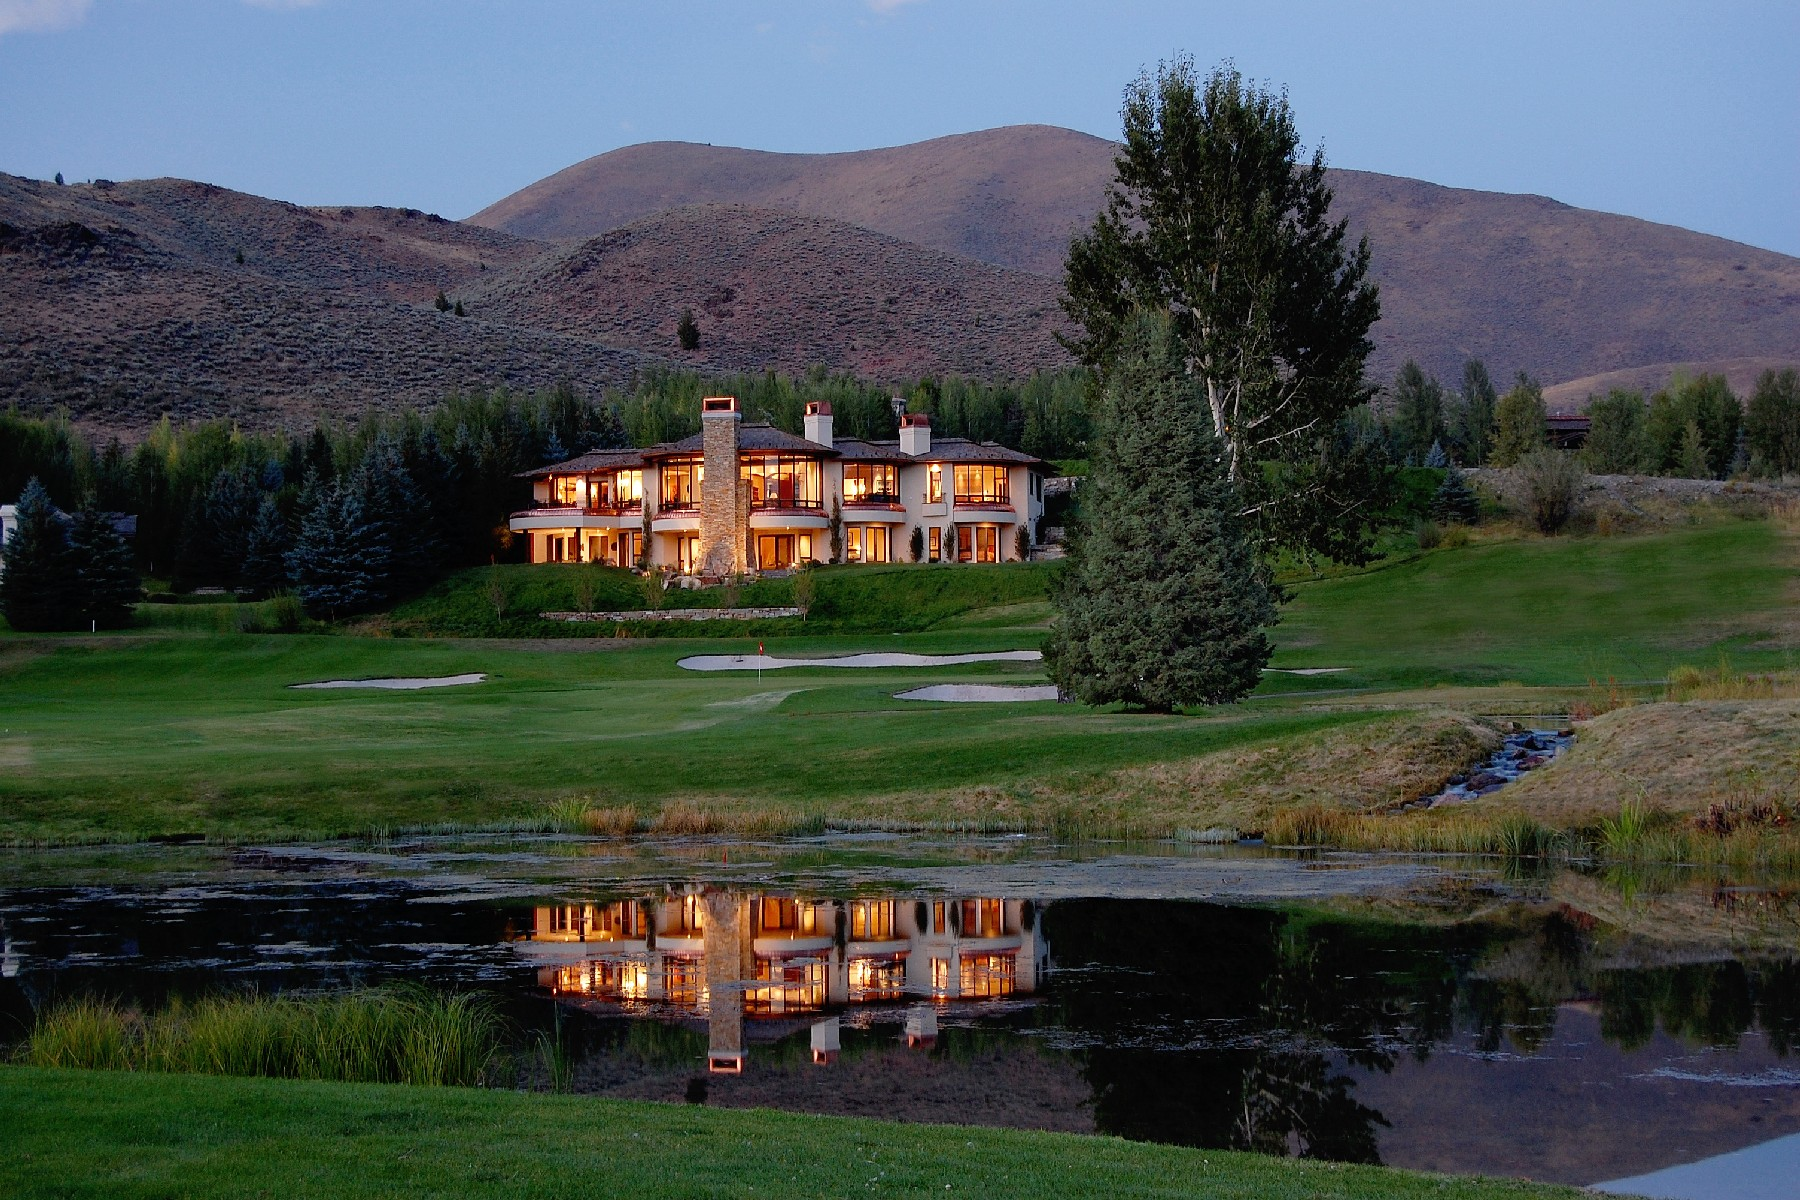 Single Family Homes for Sale at Overlooking The Bigwood Golf Course 350 North Bigwood Drive Ketchum, Idaho 83340 United States